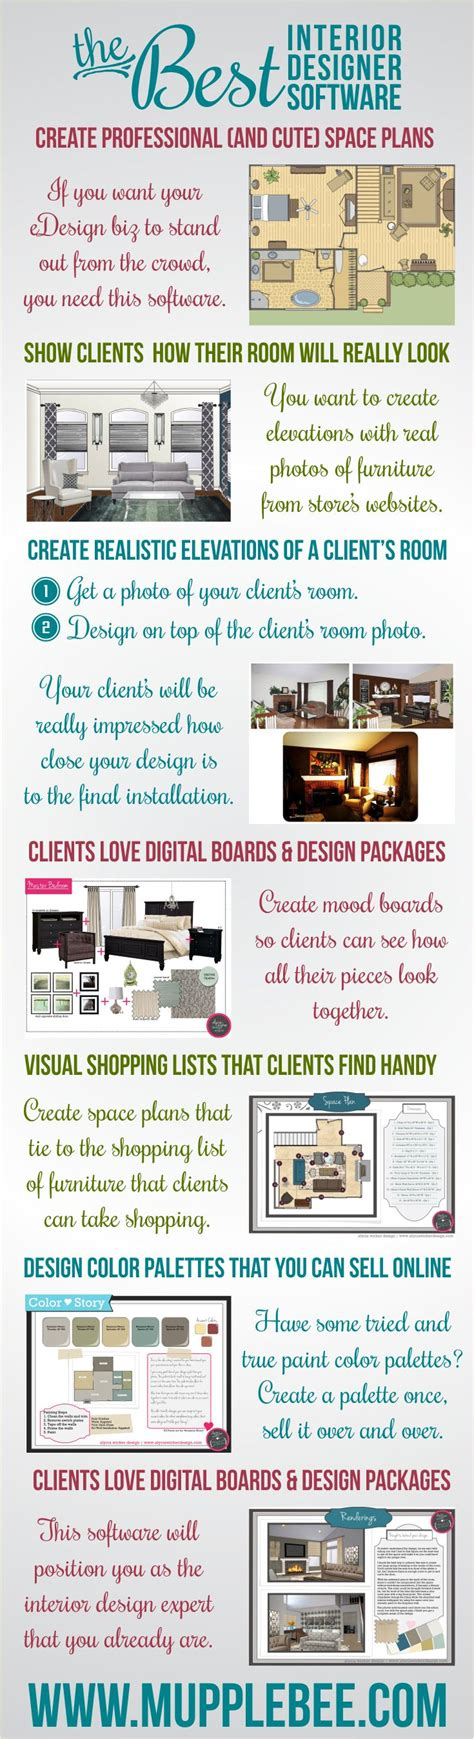 what can i do with an interior design degree